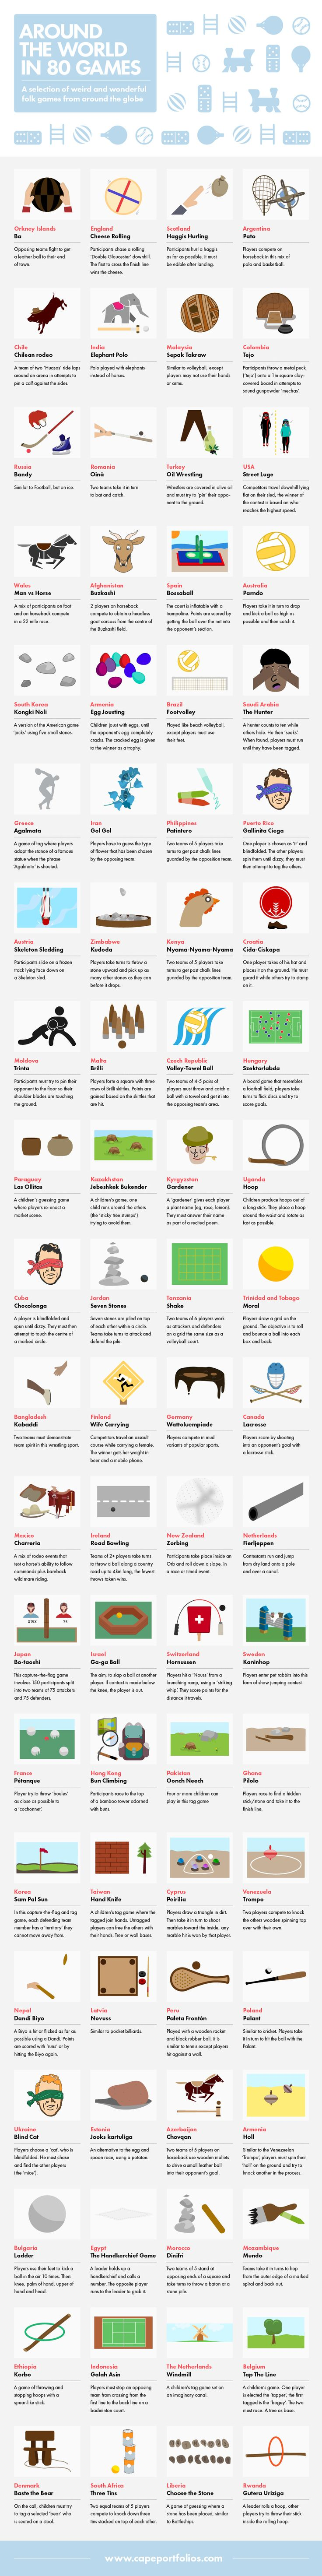 "Nice Infographic: ""Around the World in 80 Games"" 